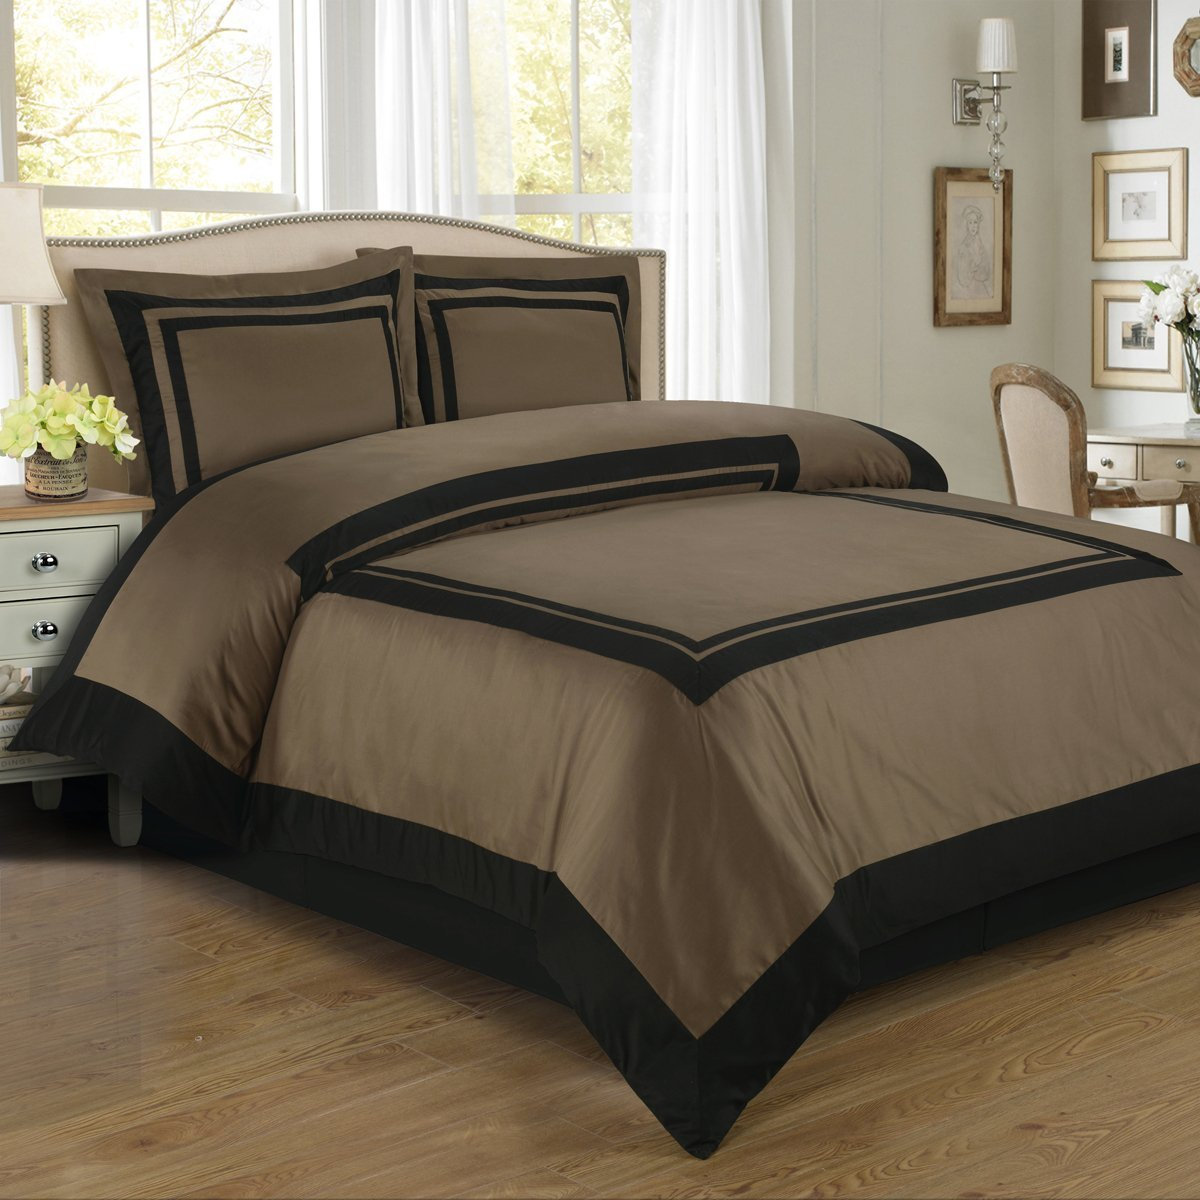 Hotel Taupe and Black 2-Piece Twin / Twin XL Duvet-Cover-Set